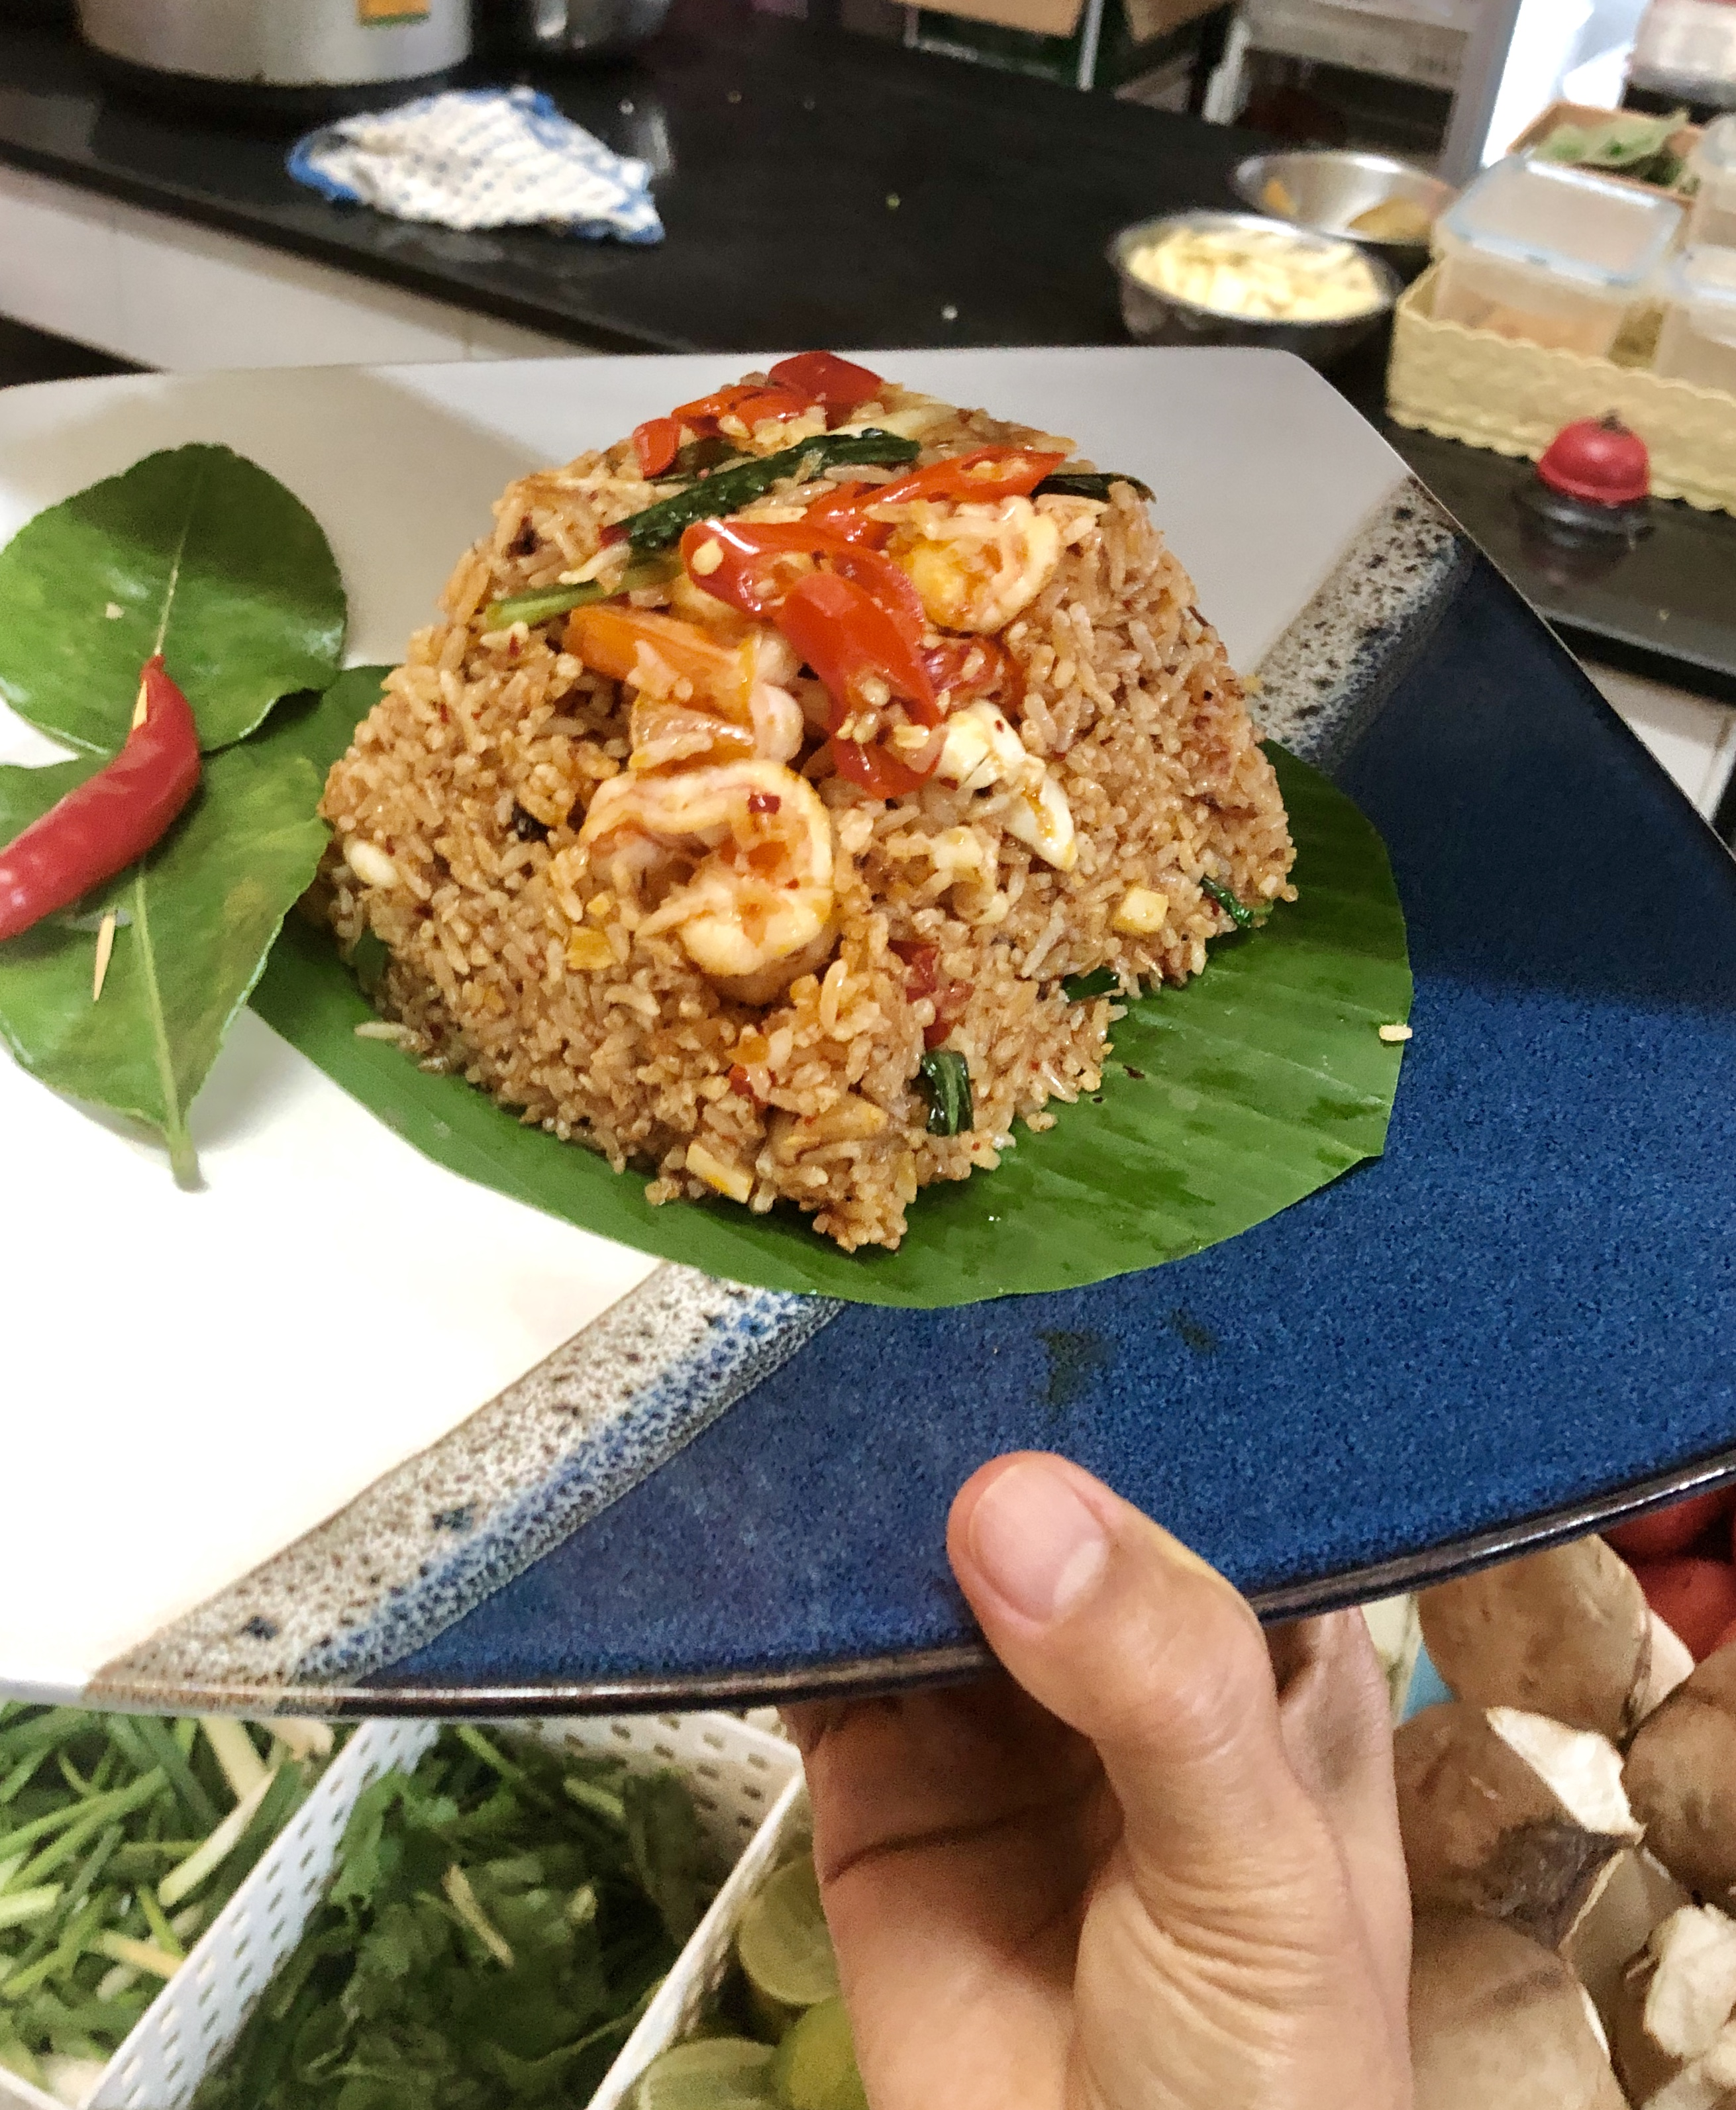 Fried Rice with Tom Yum Kung Seafood